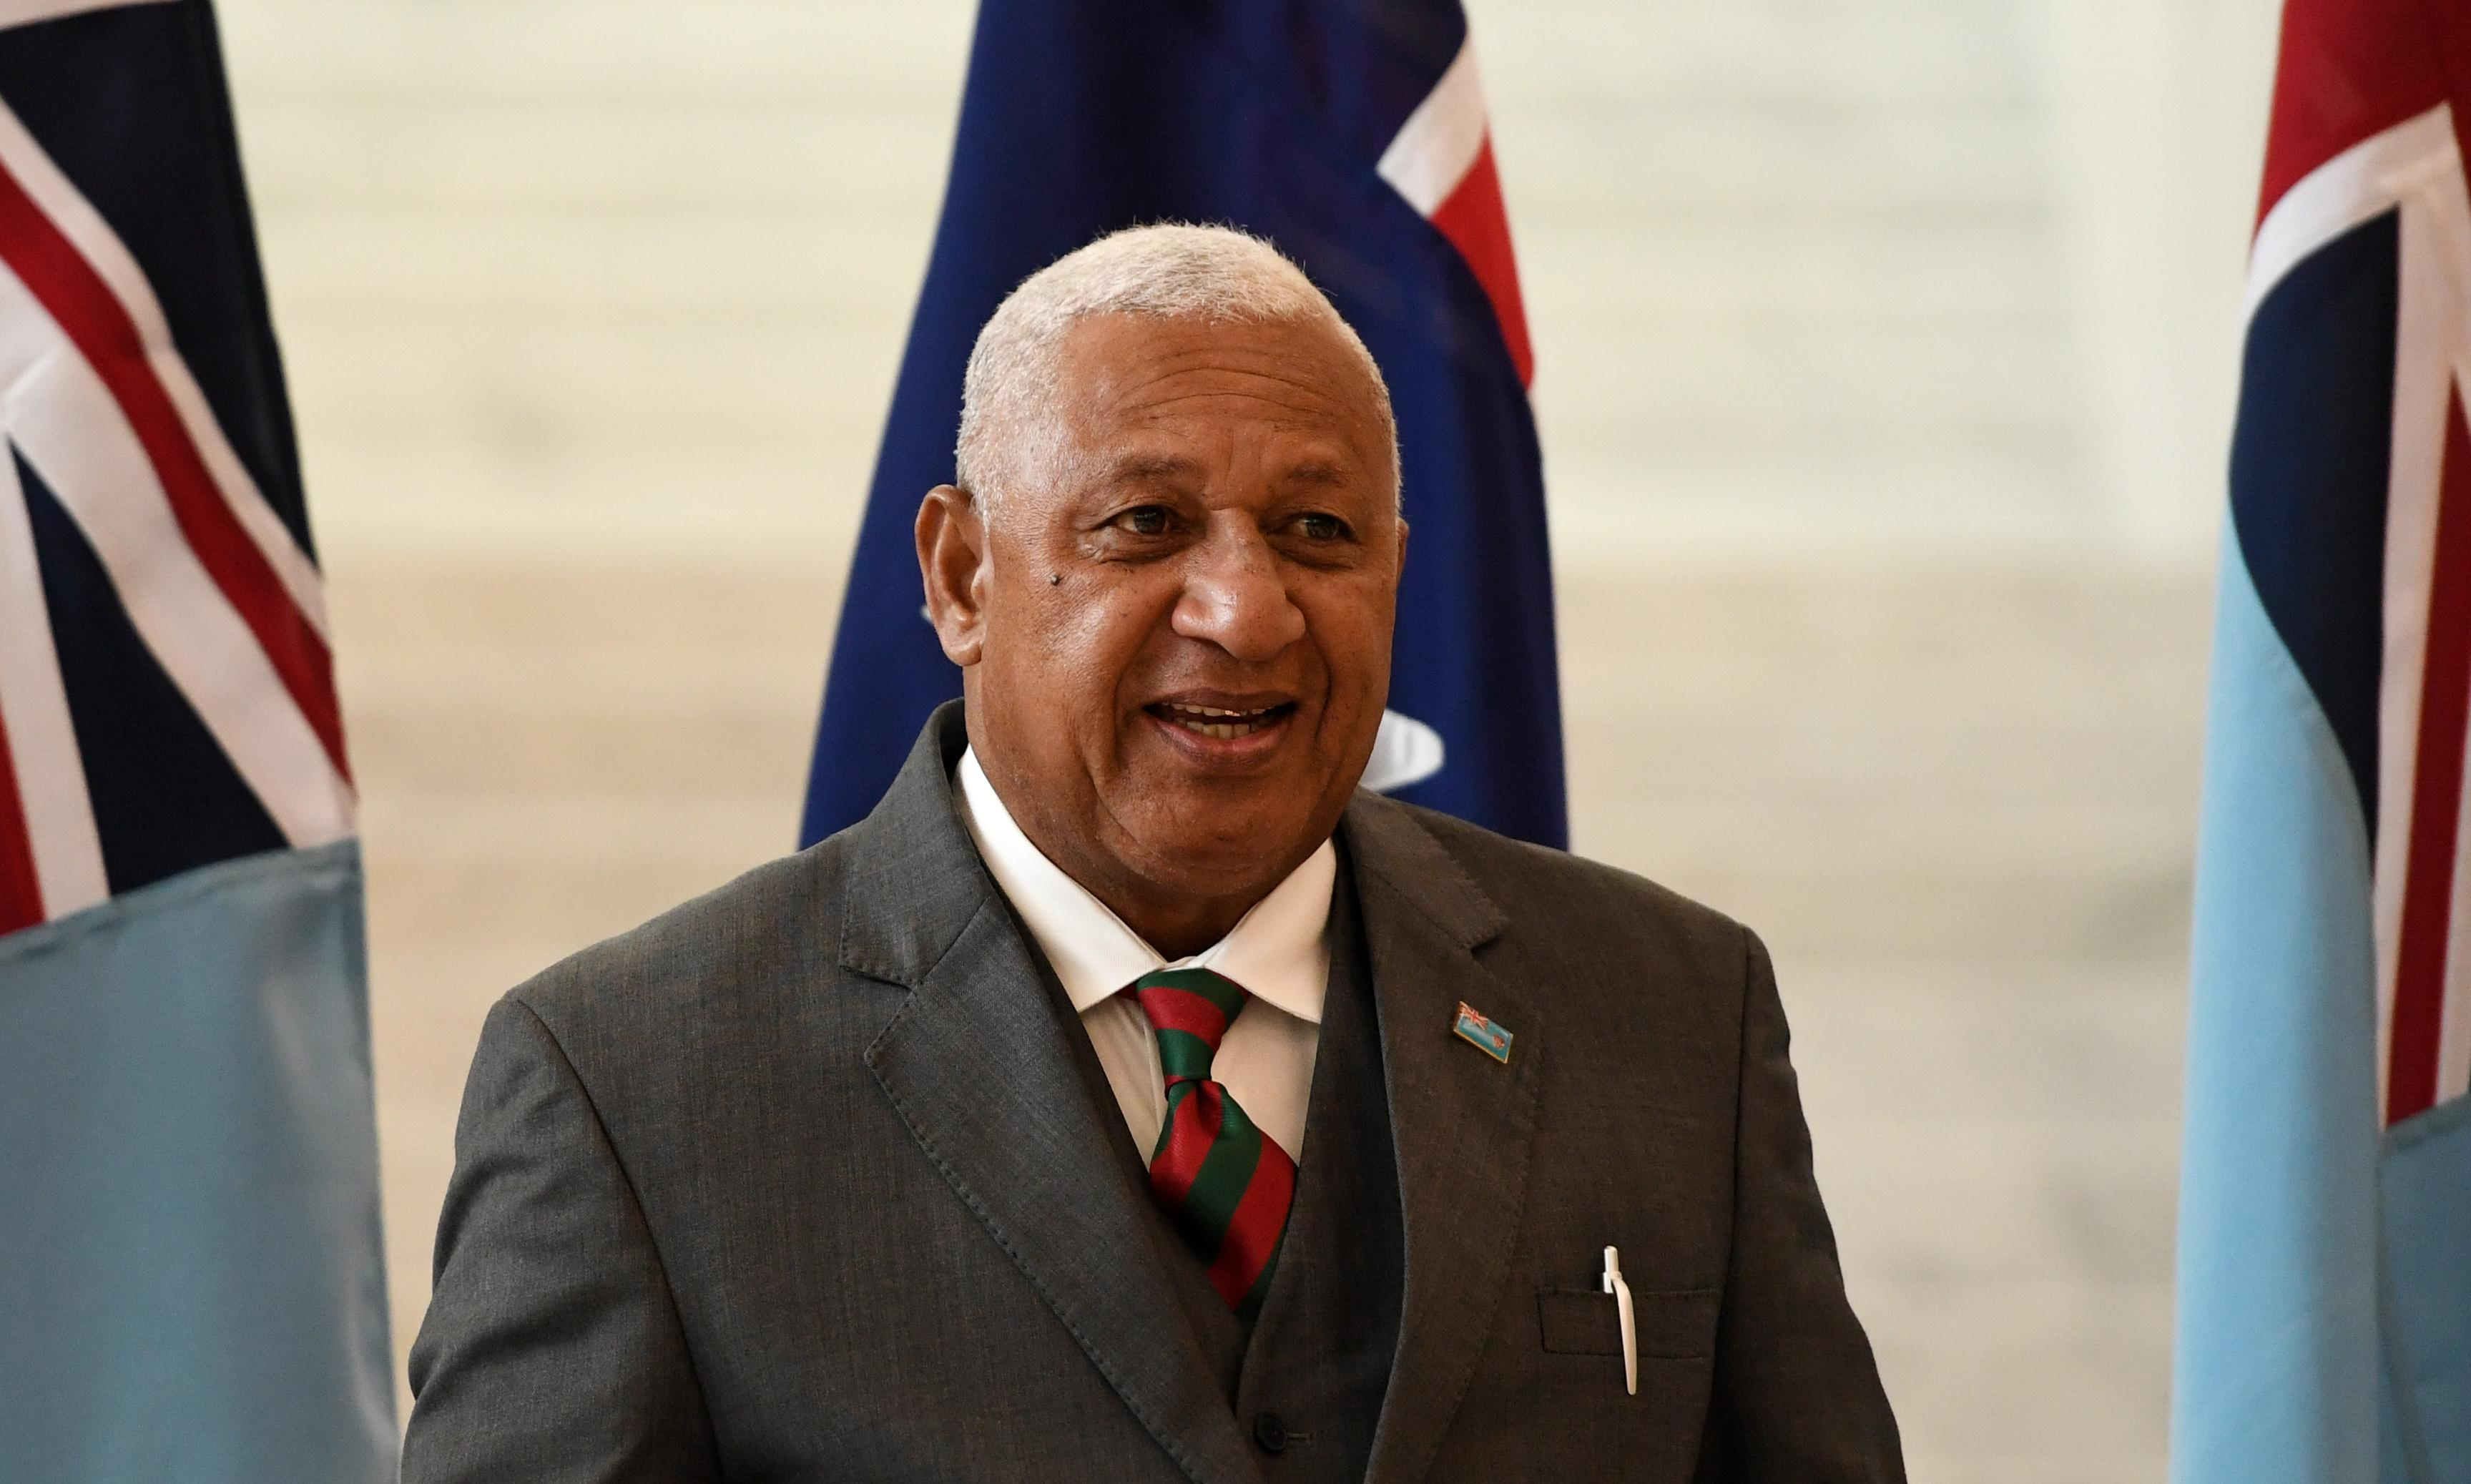 Fijian prime minister calls on Australia to be 'far more ambitious' on climate